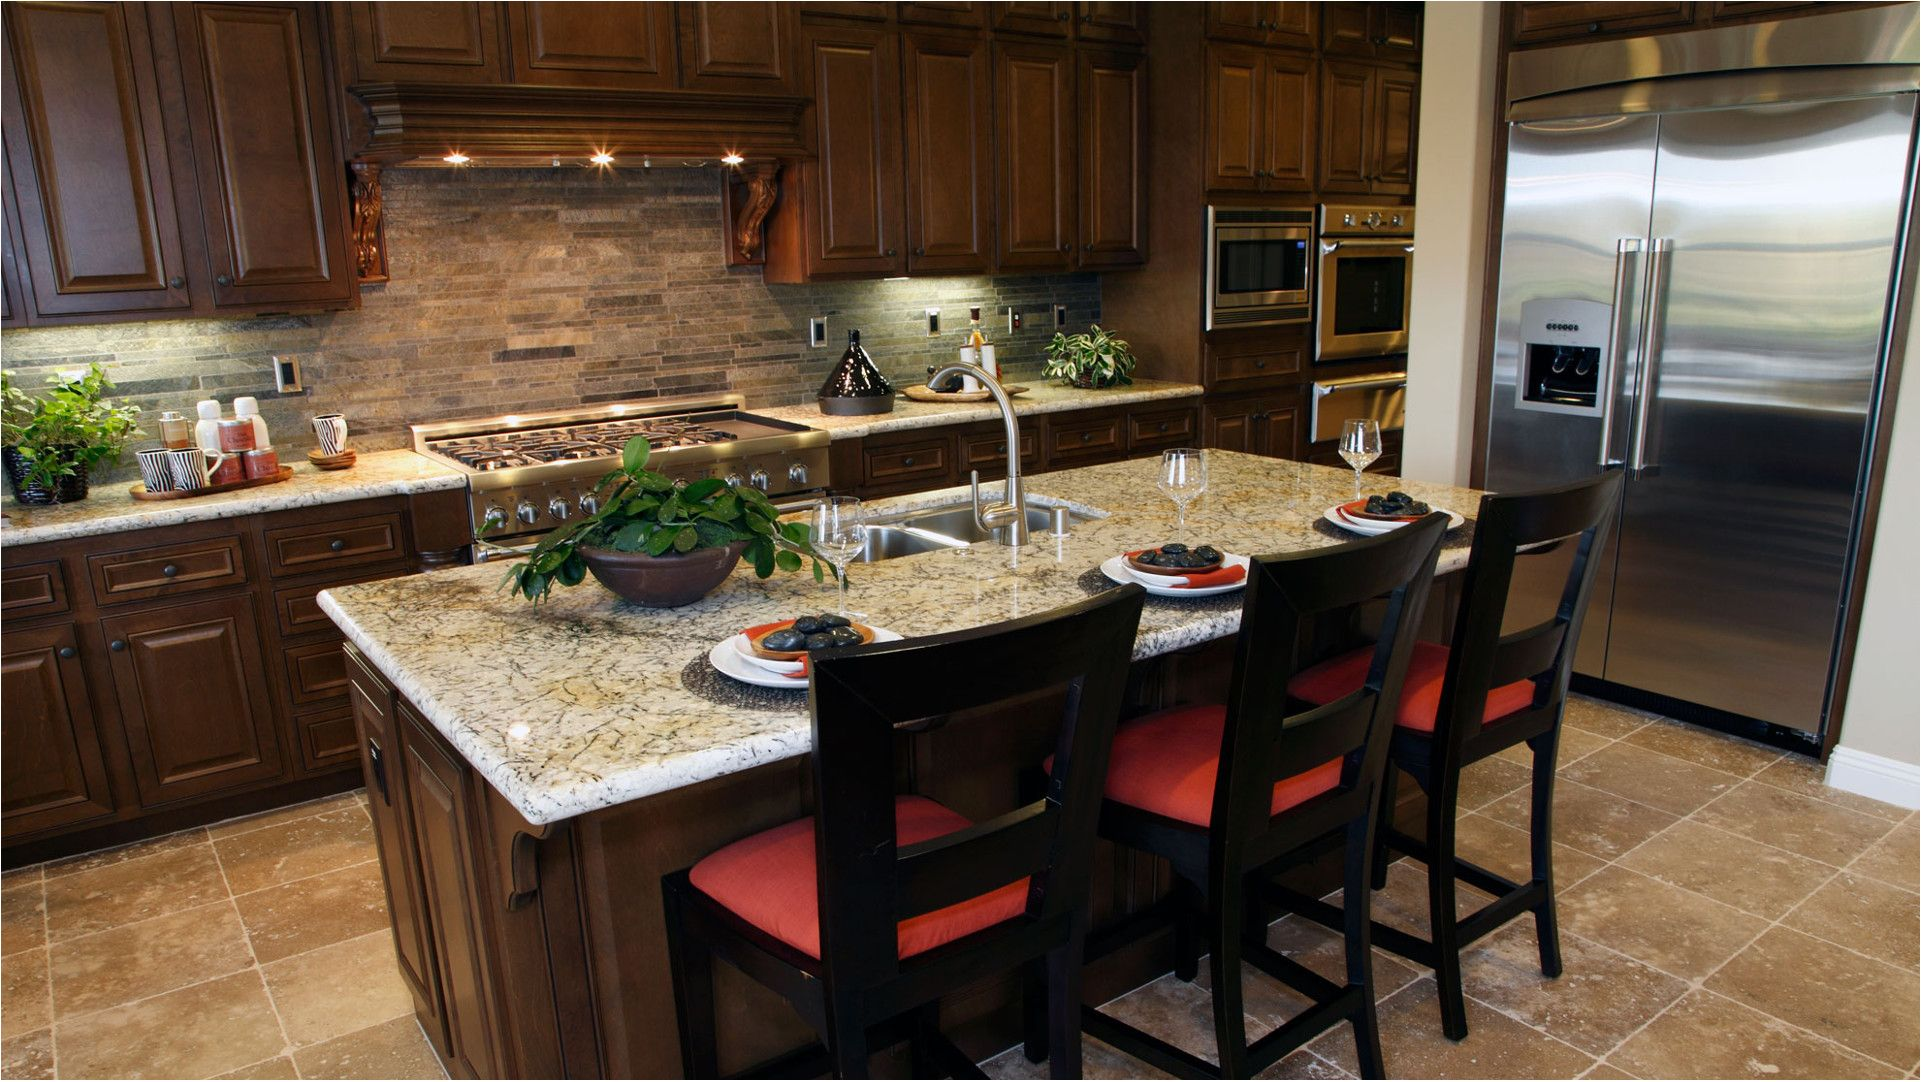 Modernize your Kitchen Space with Designer Cabinetry from Top Home Decorating Sites